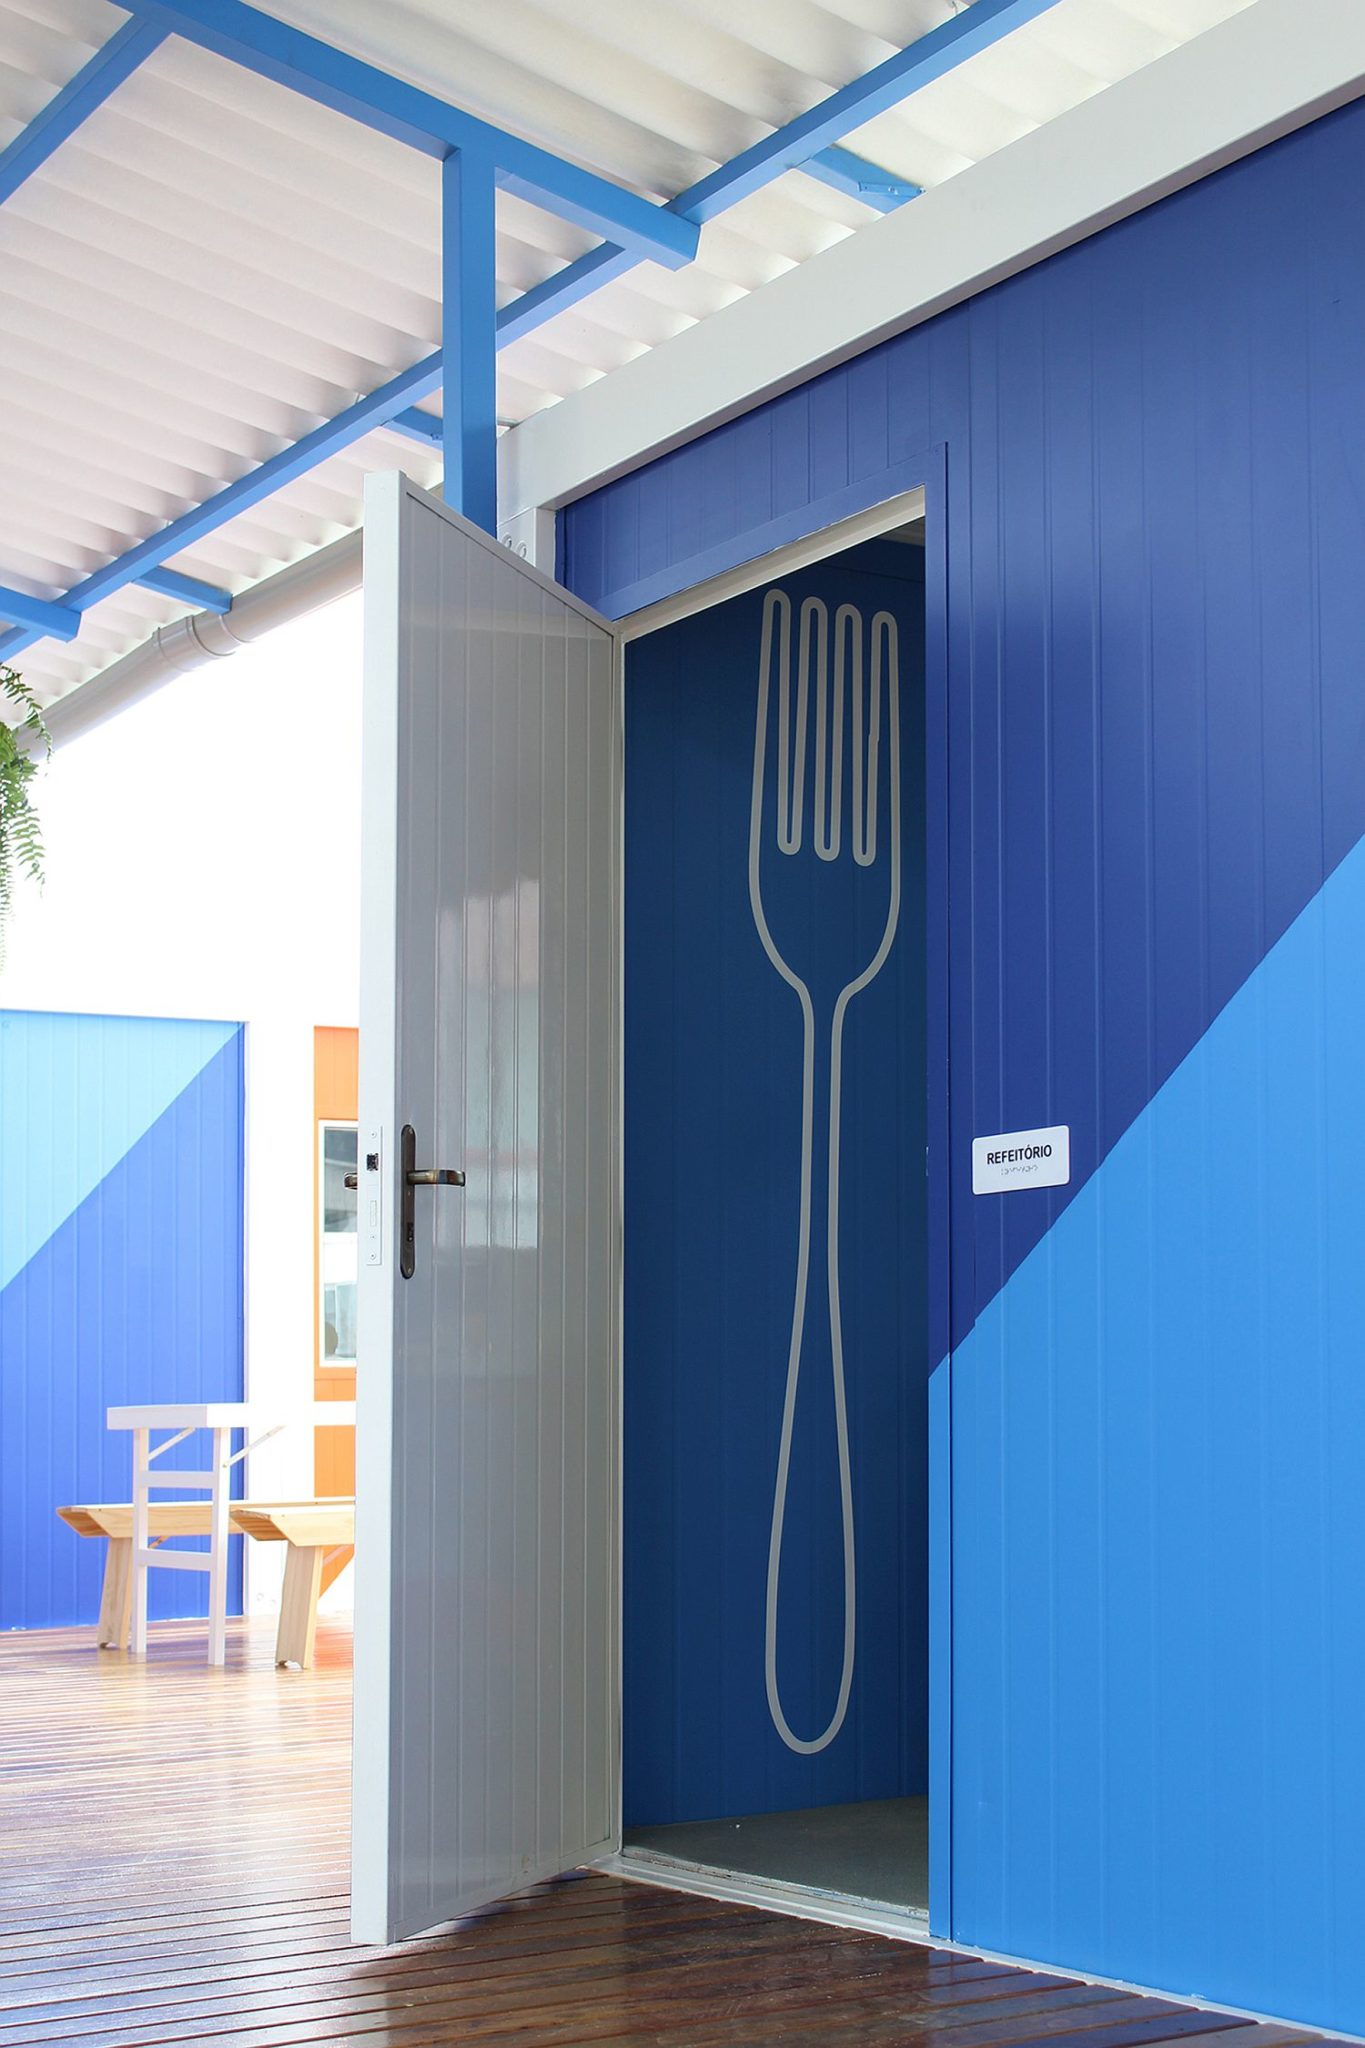 Walls-in-blue-and-white-inside-the-JAMDS-Social-Center